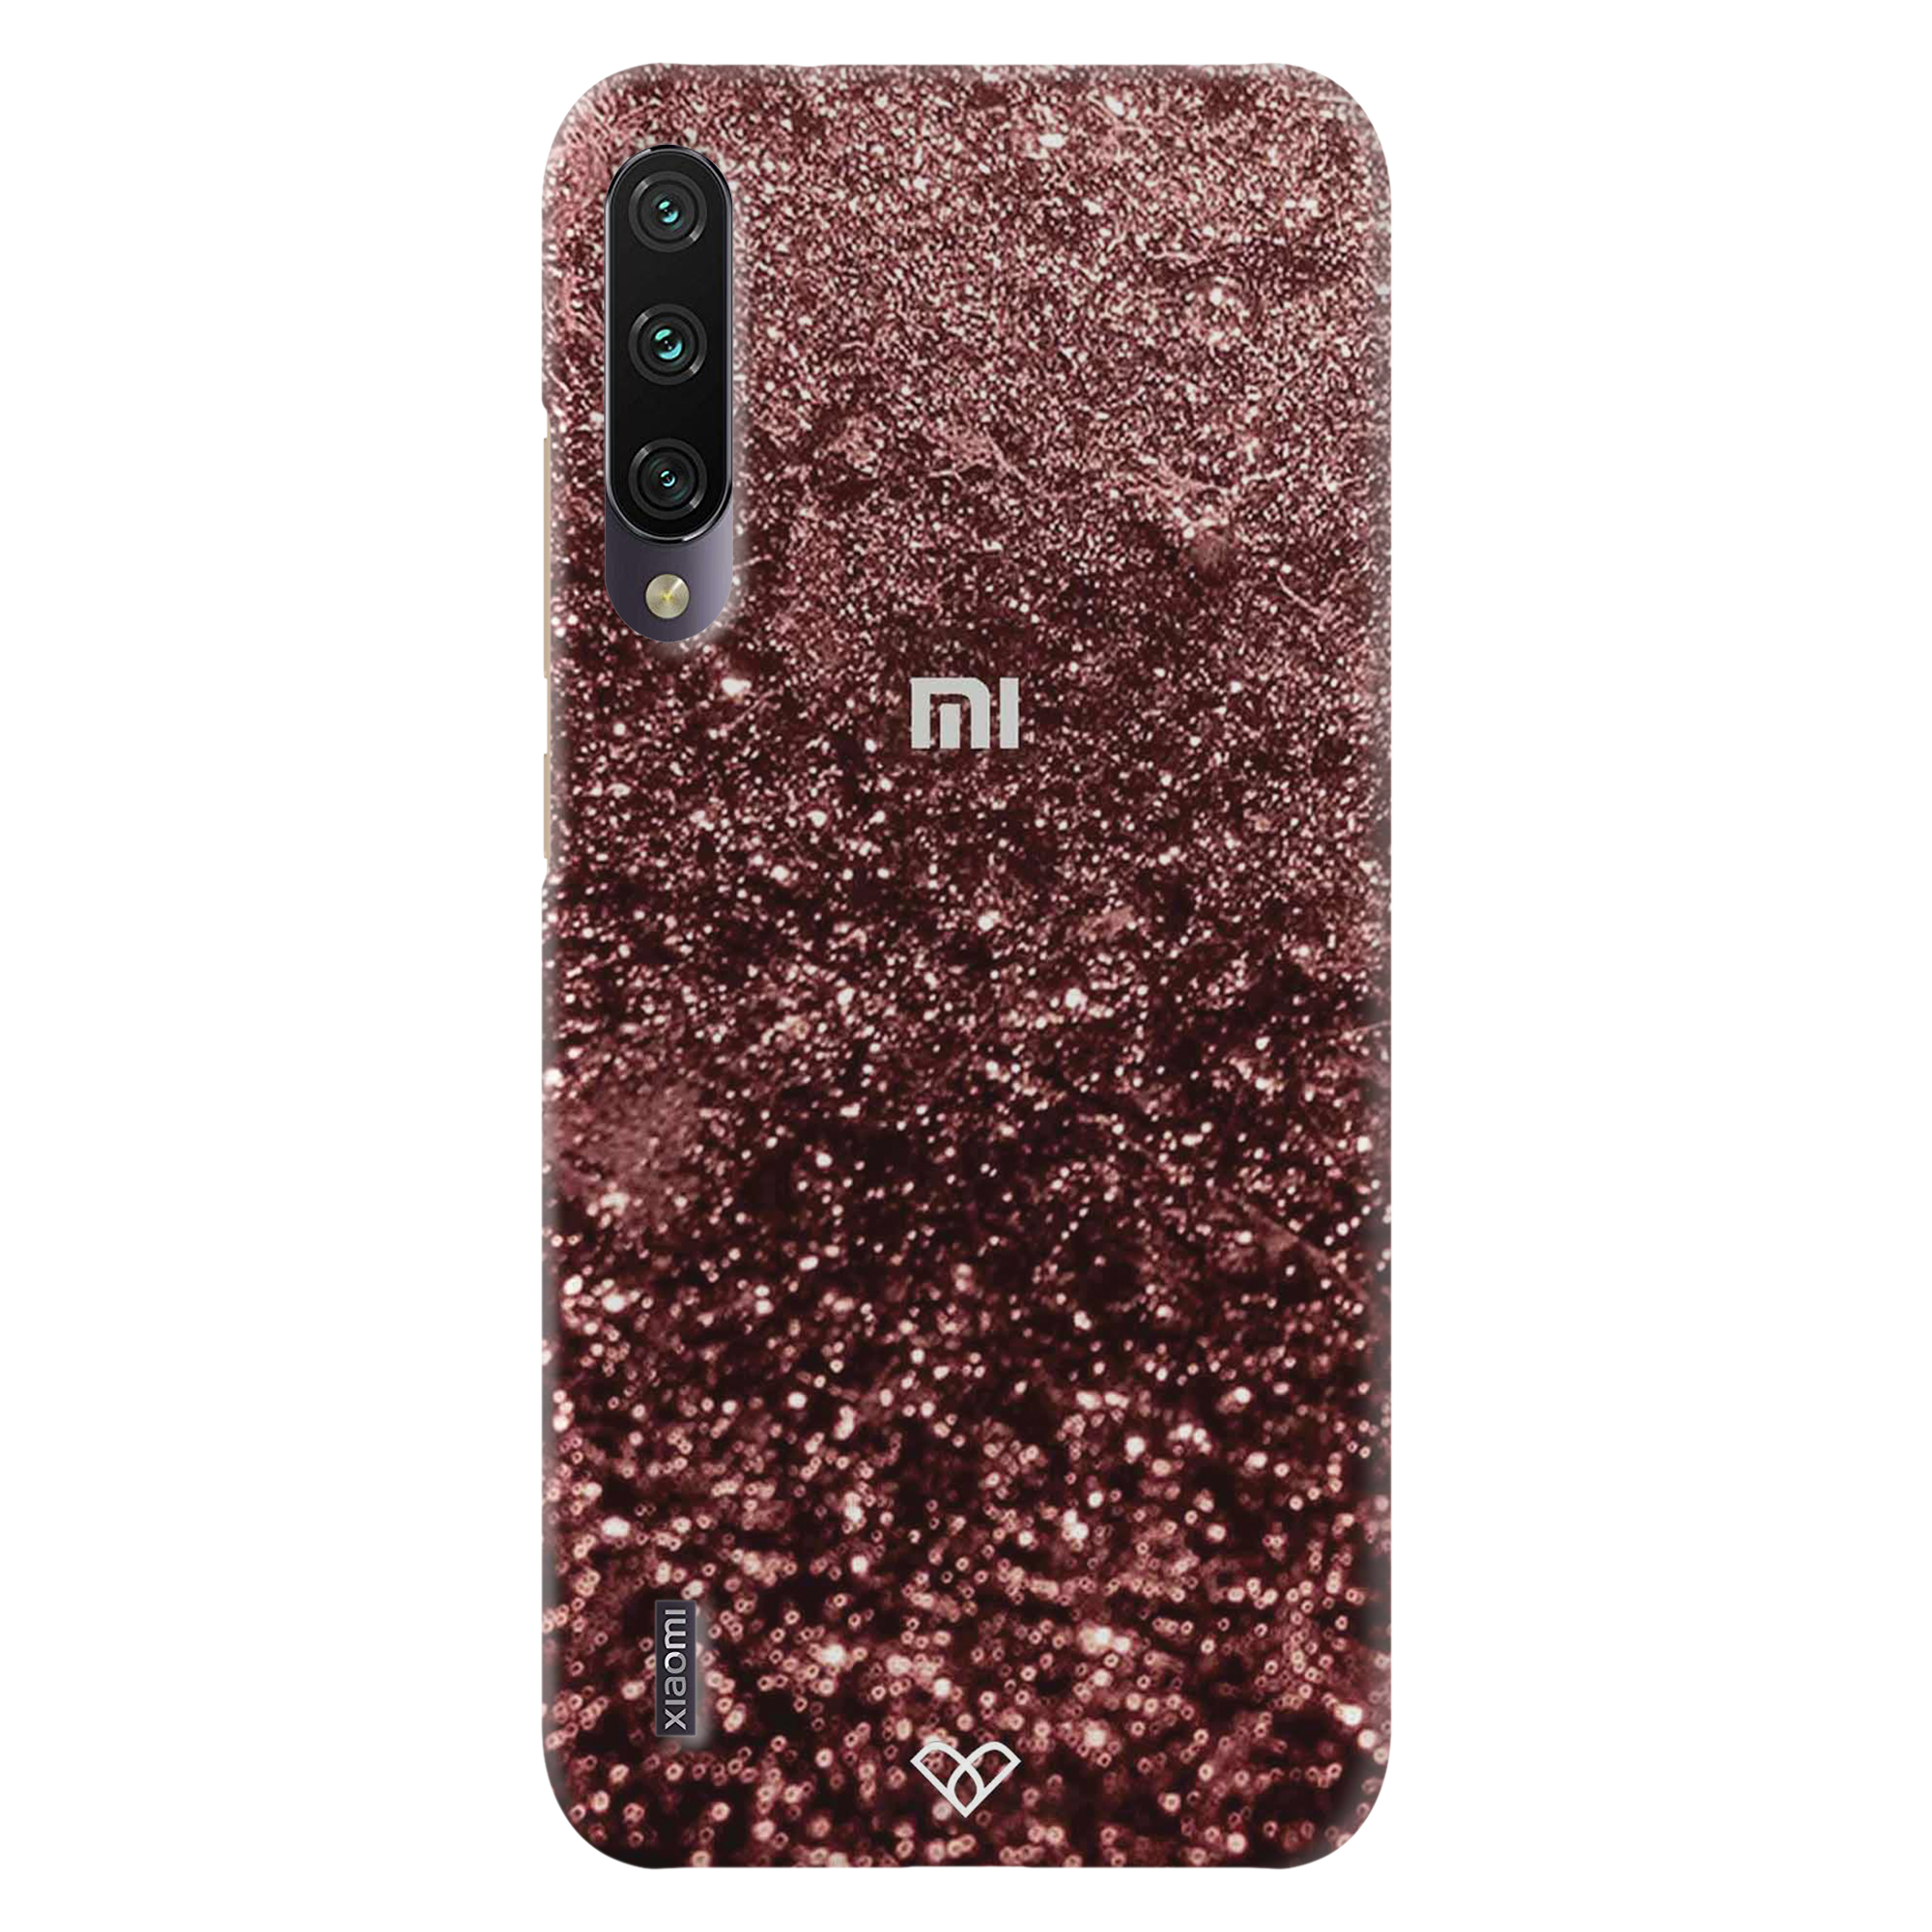 Copper Slim Case And Cover For Redmi A3